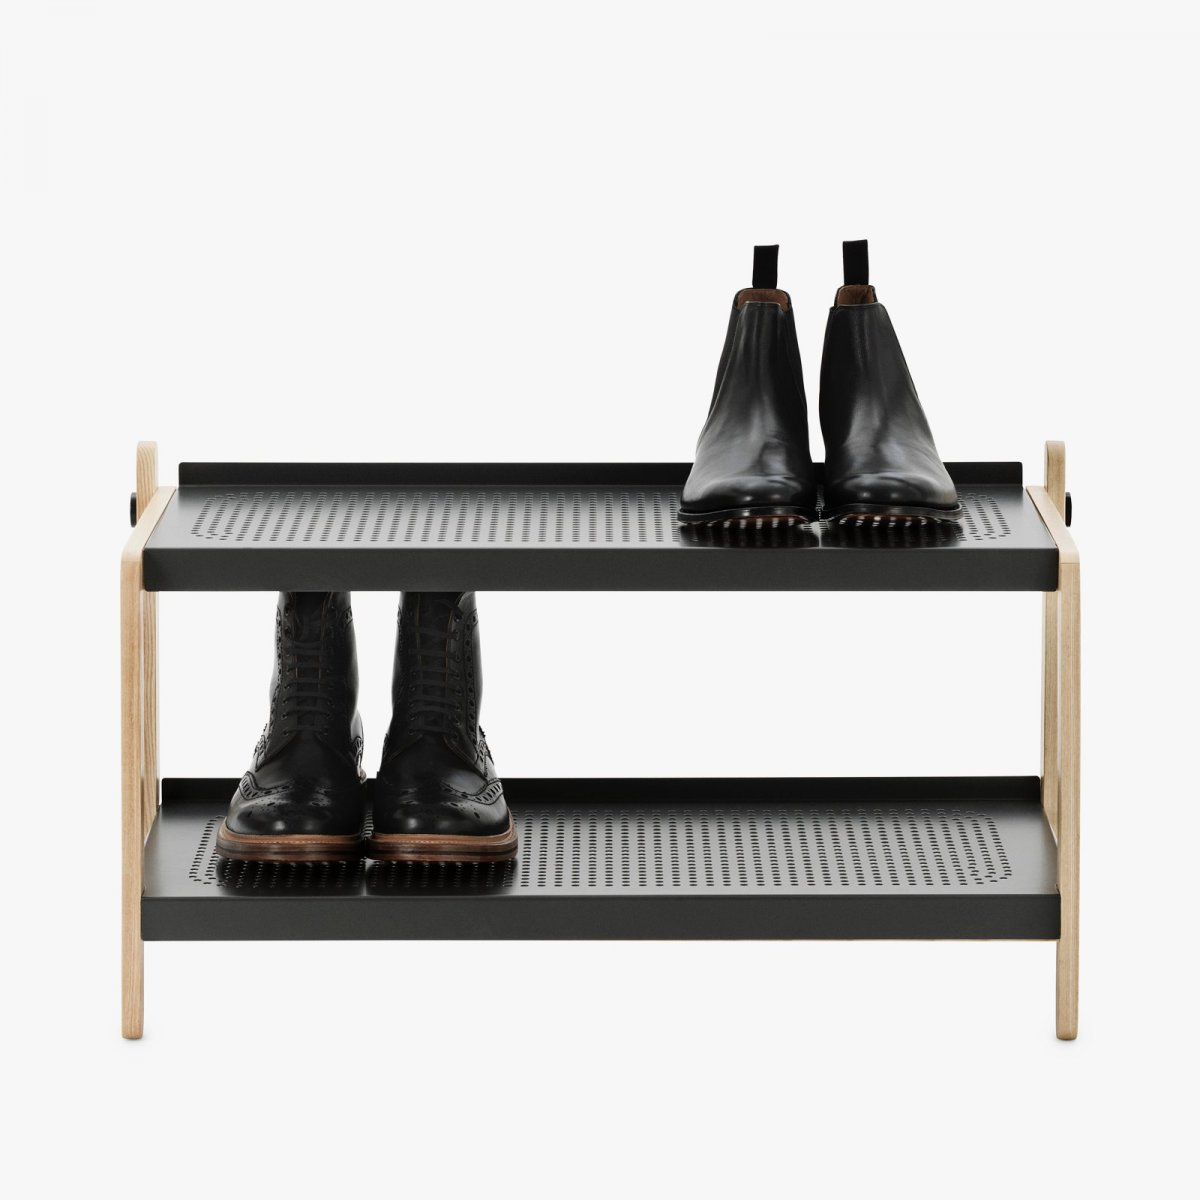 Sko Shoe Rack in gray.